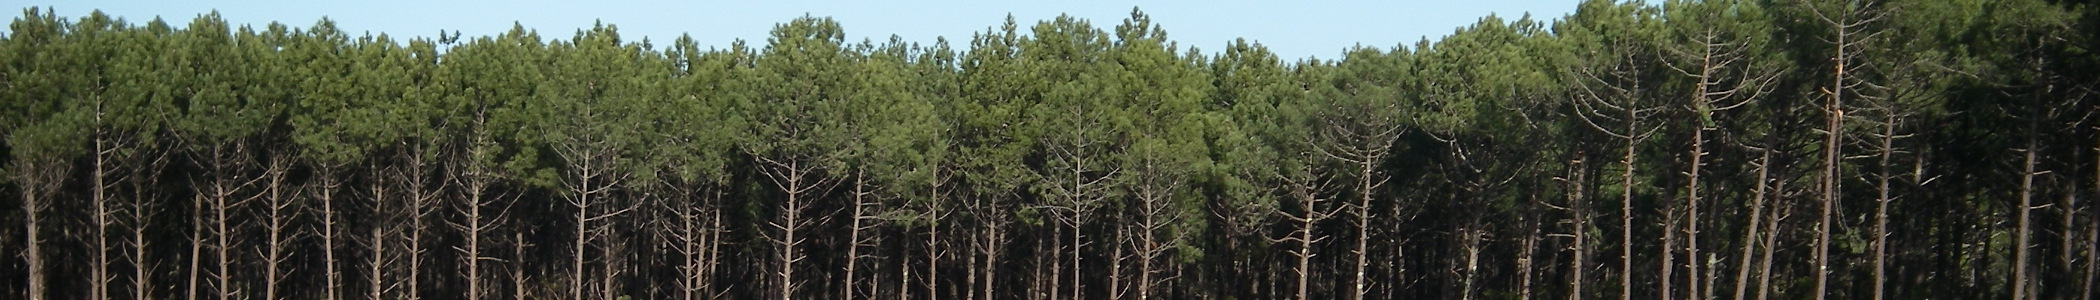 file aquitaine banner landes forest jpg wikimedia commons